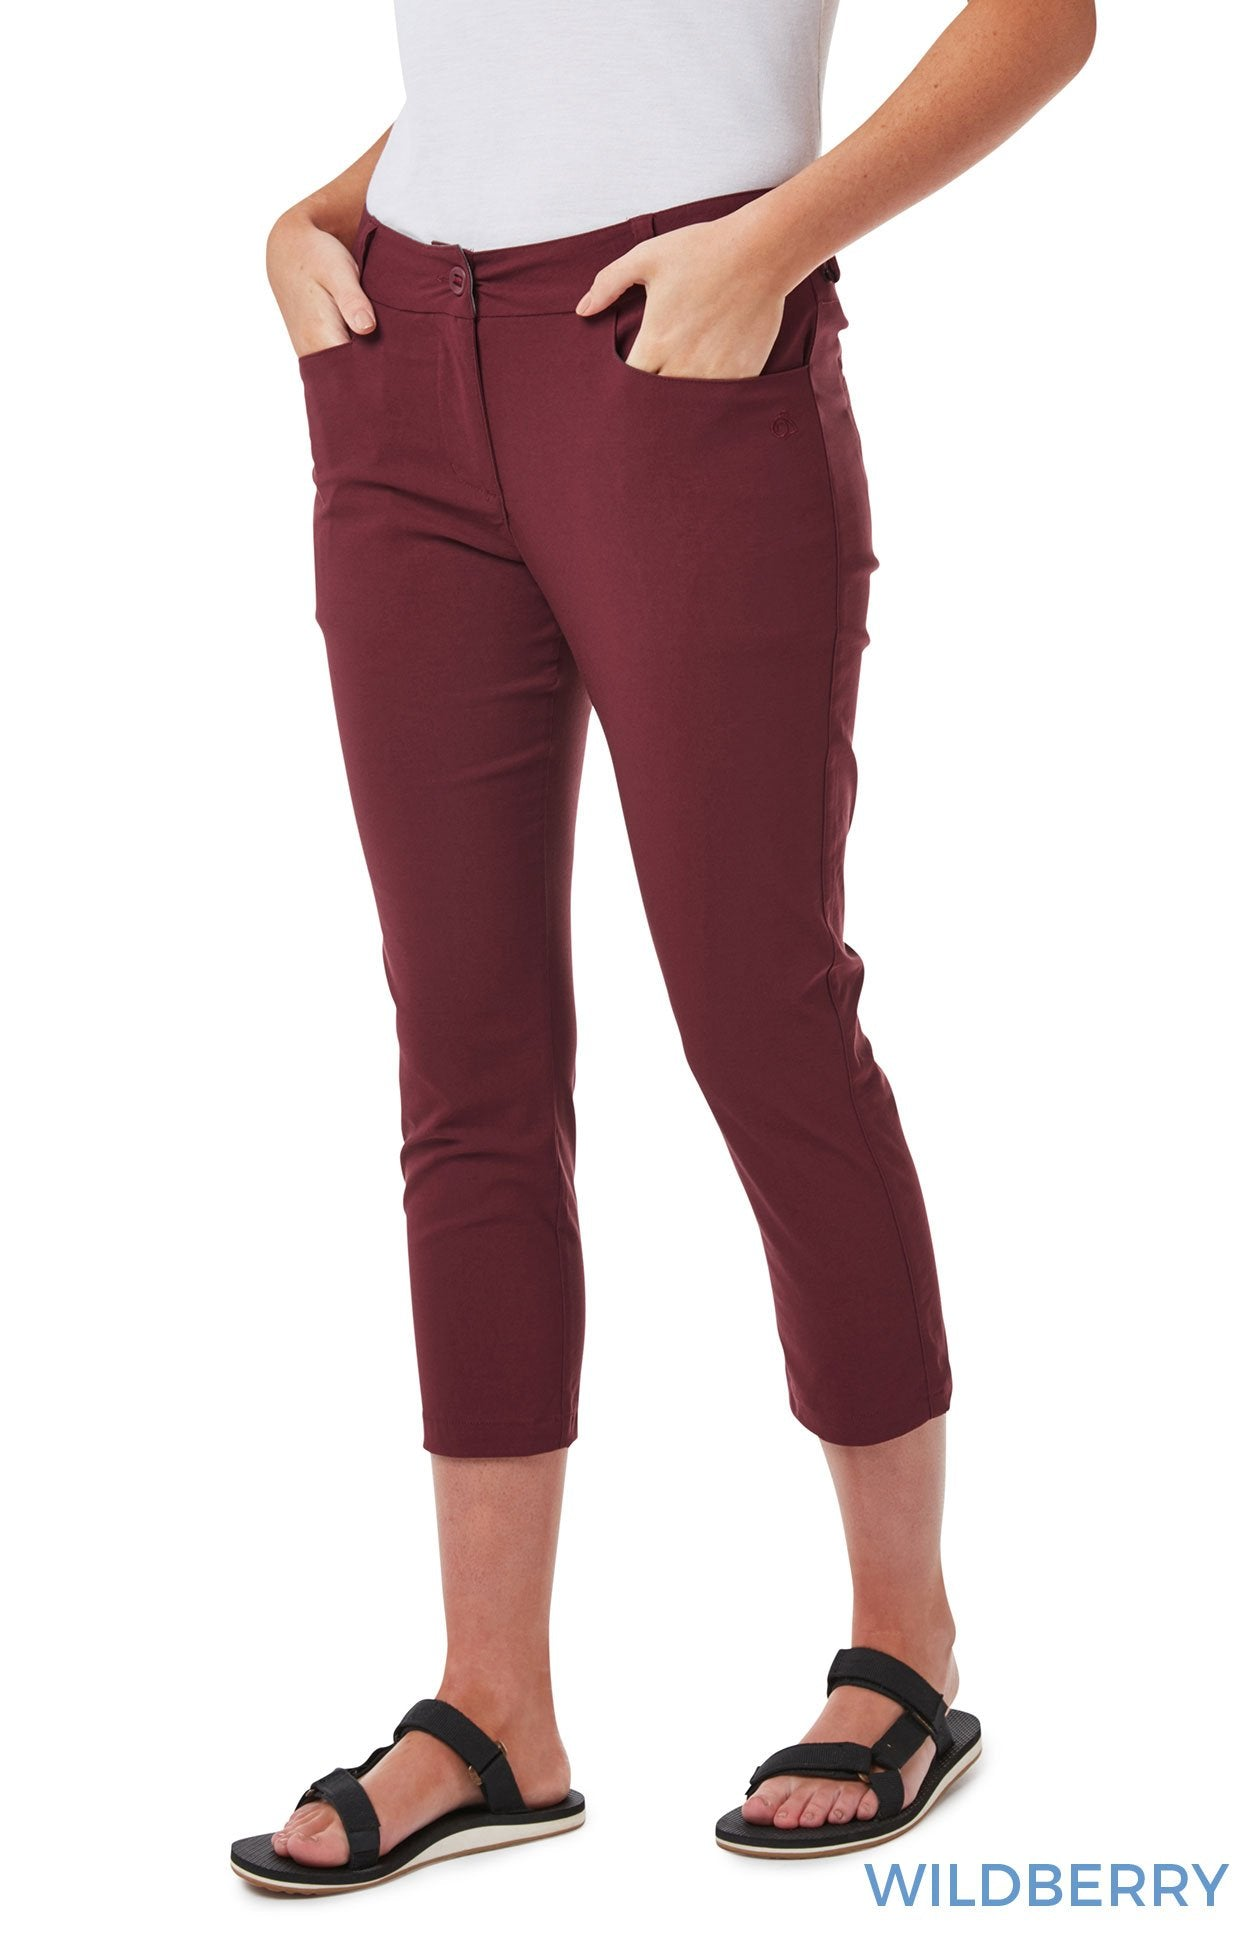 Wildberry Ladies Clara NosiLife Crop Pants by Craghoppers